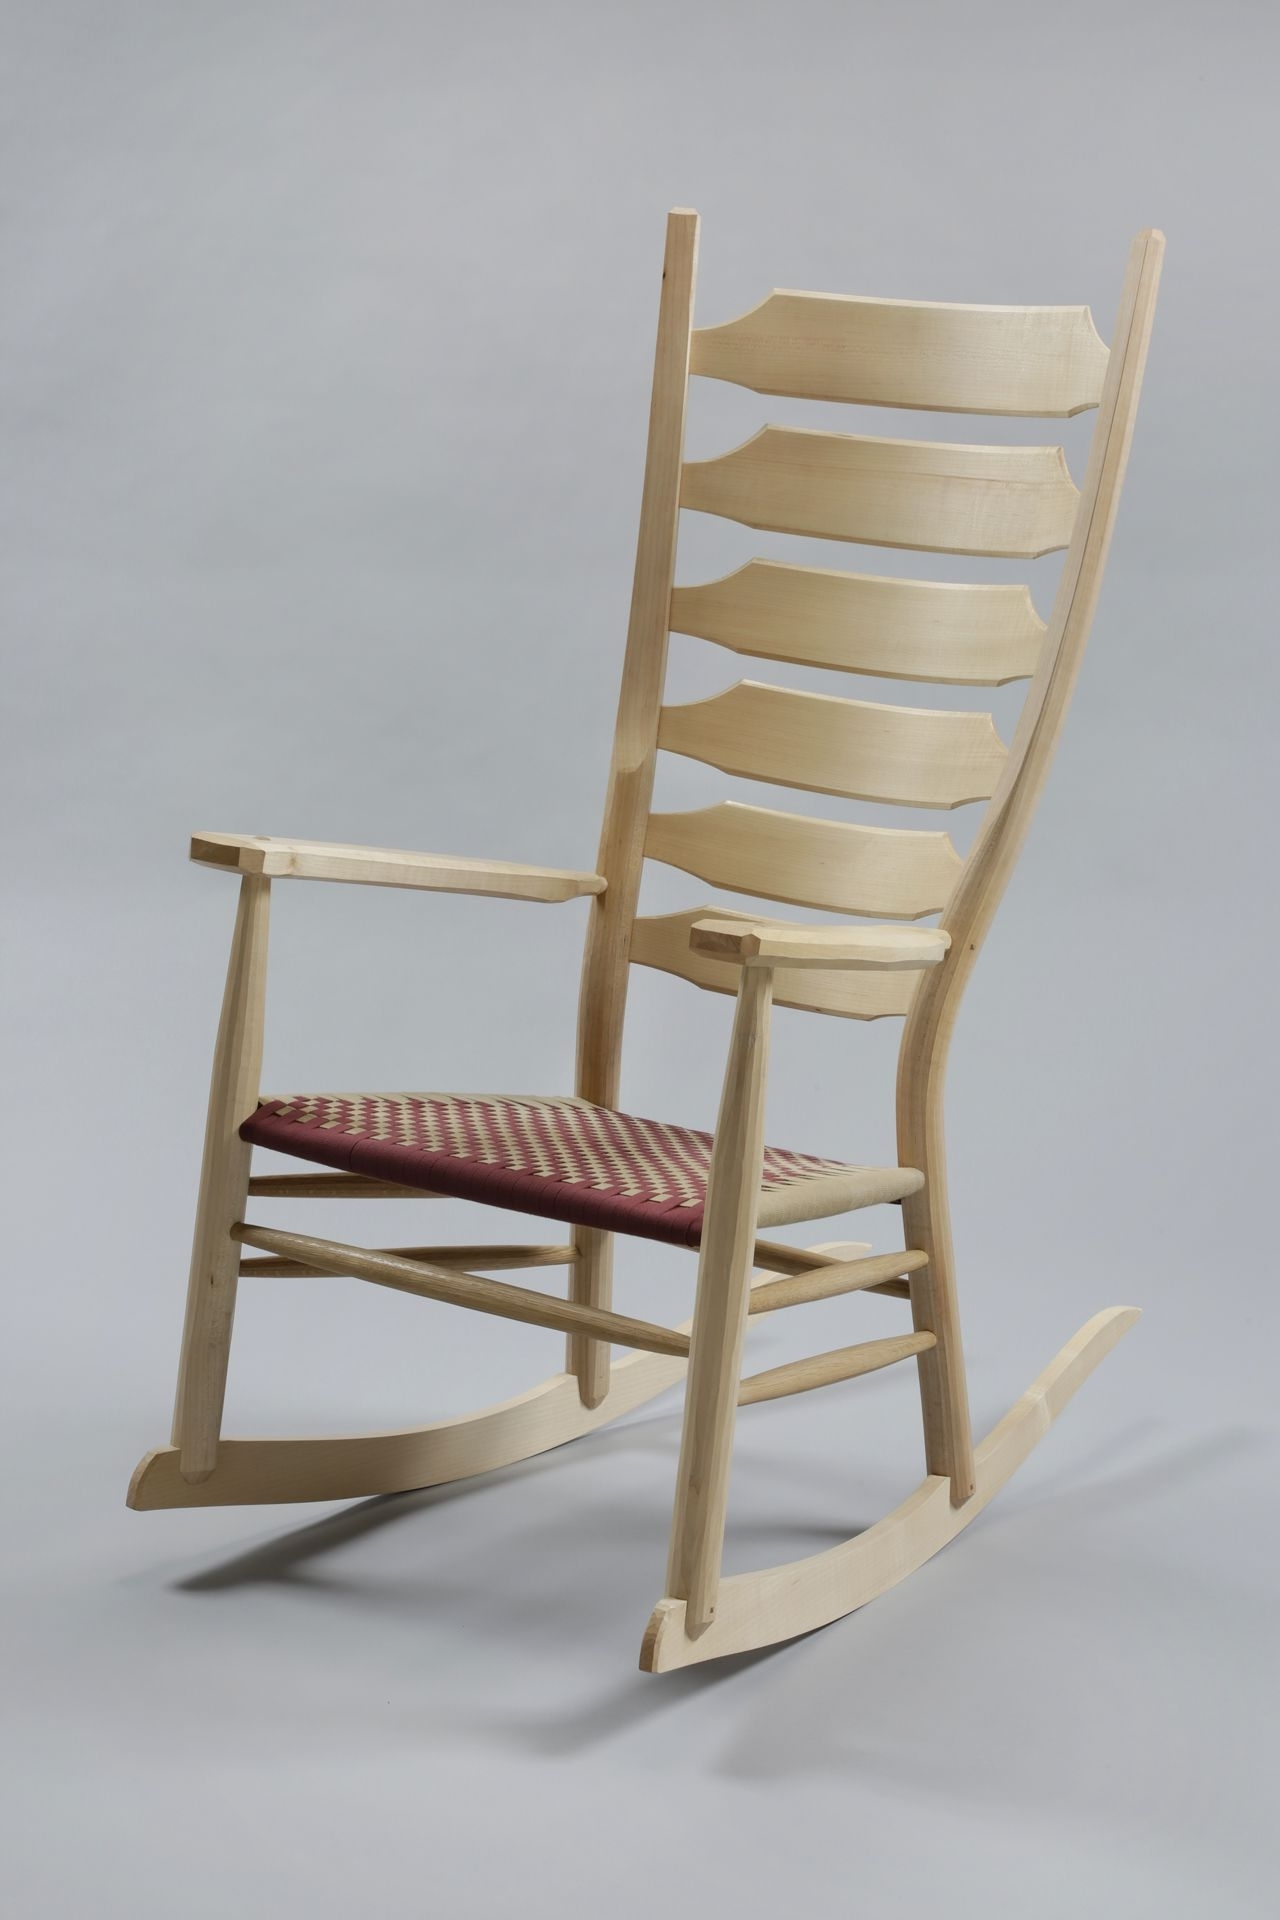 Rocking Chairs With Lumbar Support Pertaining To Most Recently Released Our Greenwood Rocking Chair Is A Classic Post And Rung Chair Grown (View 4 of 15)